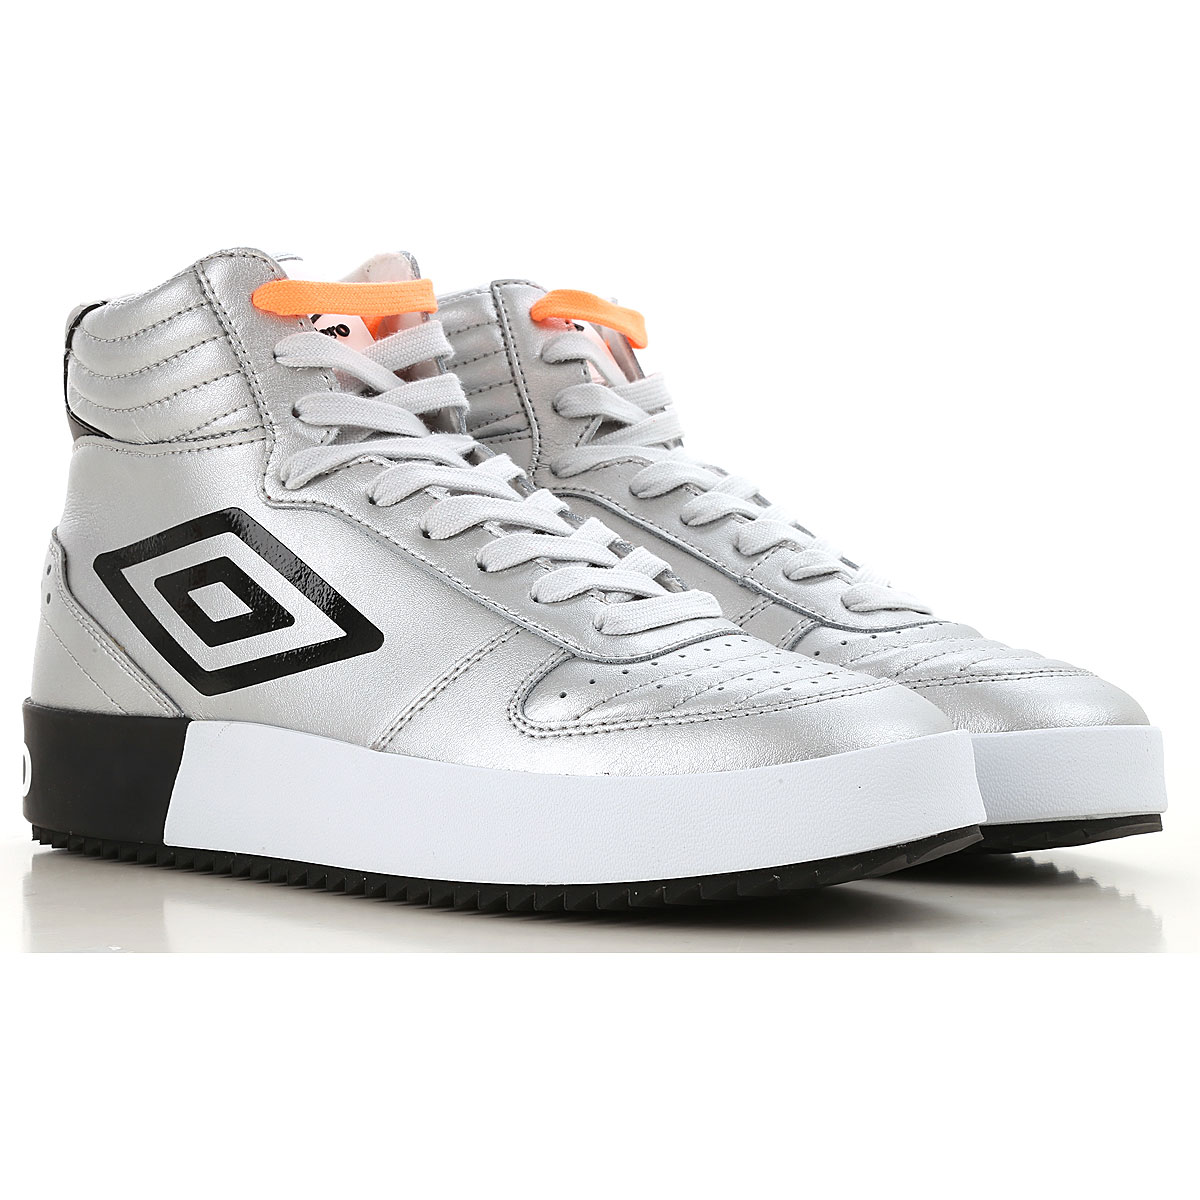 Image of Umbro Sneakers for Men, Silver, Leather, 2017, 10 10.5 7.5 8 9